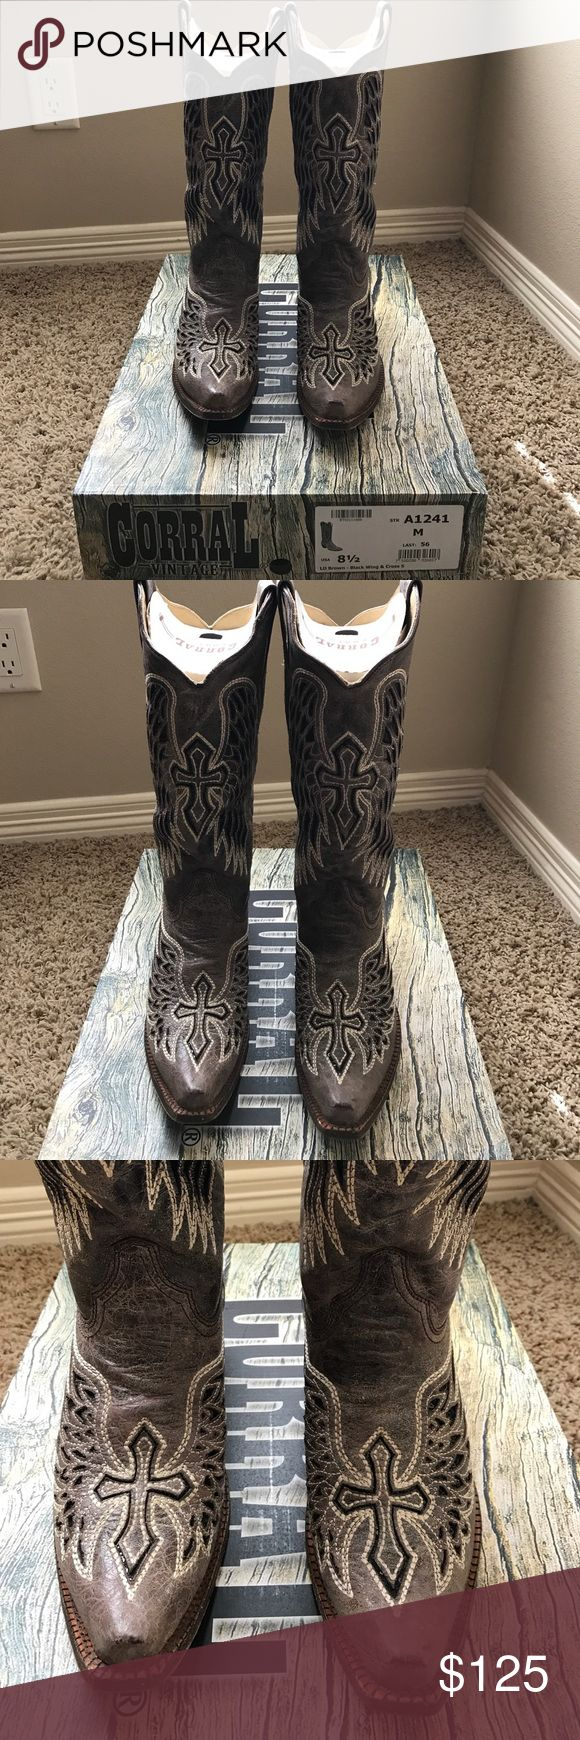 Corral Brown Black Wing and Cross Boots A1241 Corral Brown Black Wing and Cross Boots A1241 ... Excellent condition, will come with box! Corral Vintage Boots, cowgirl boots. Corral Shoes